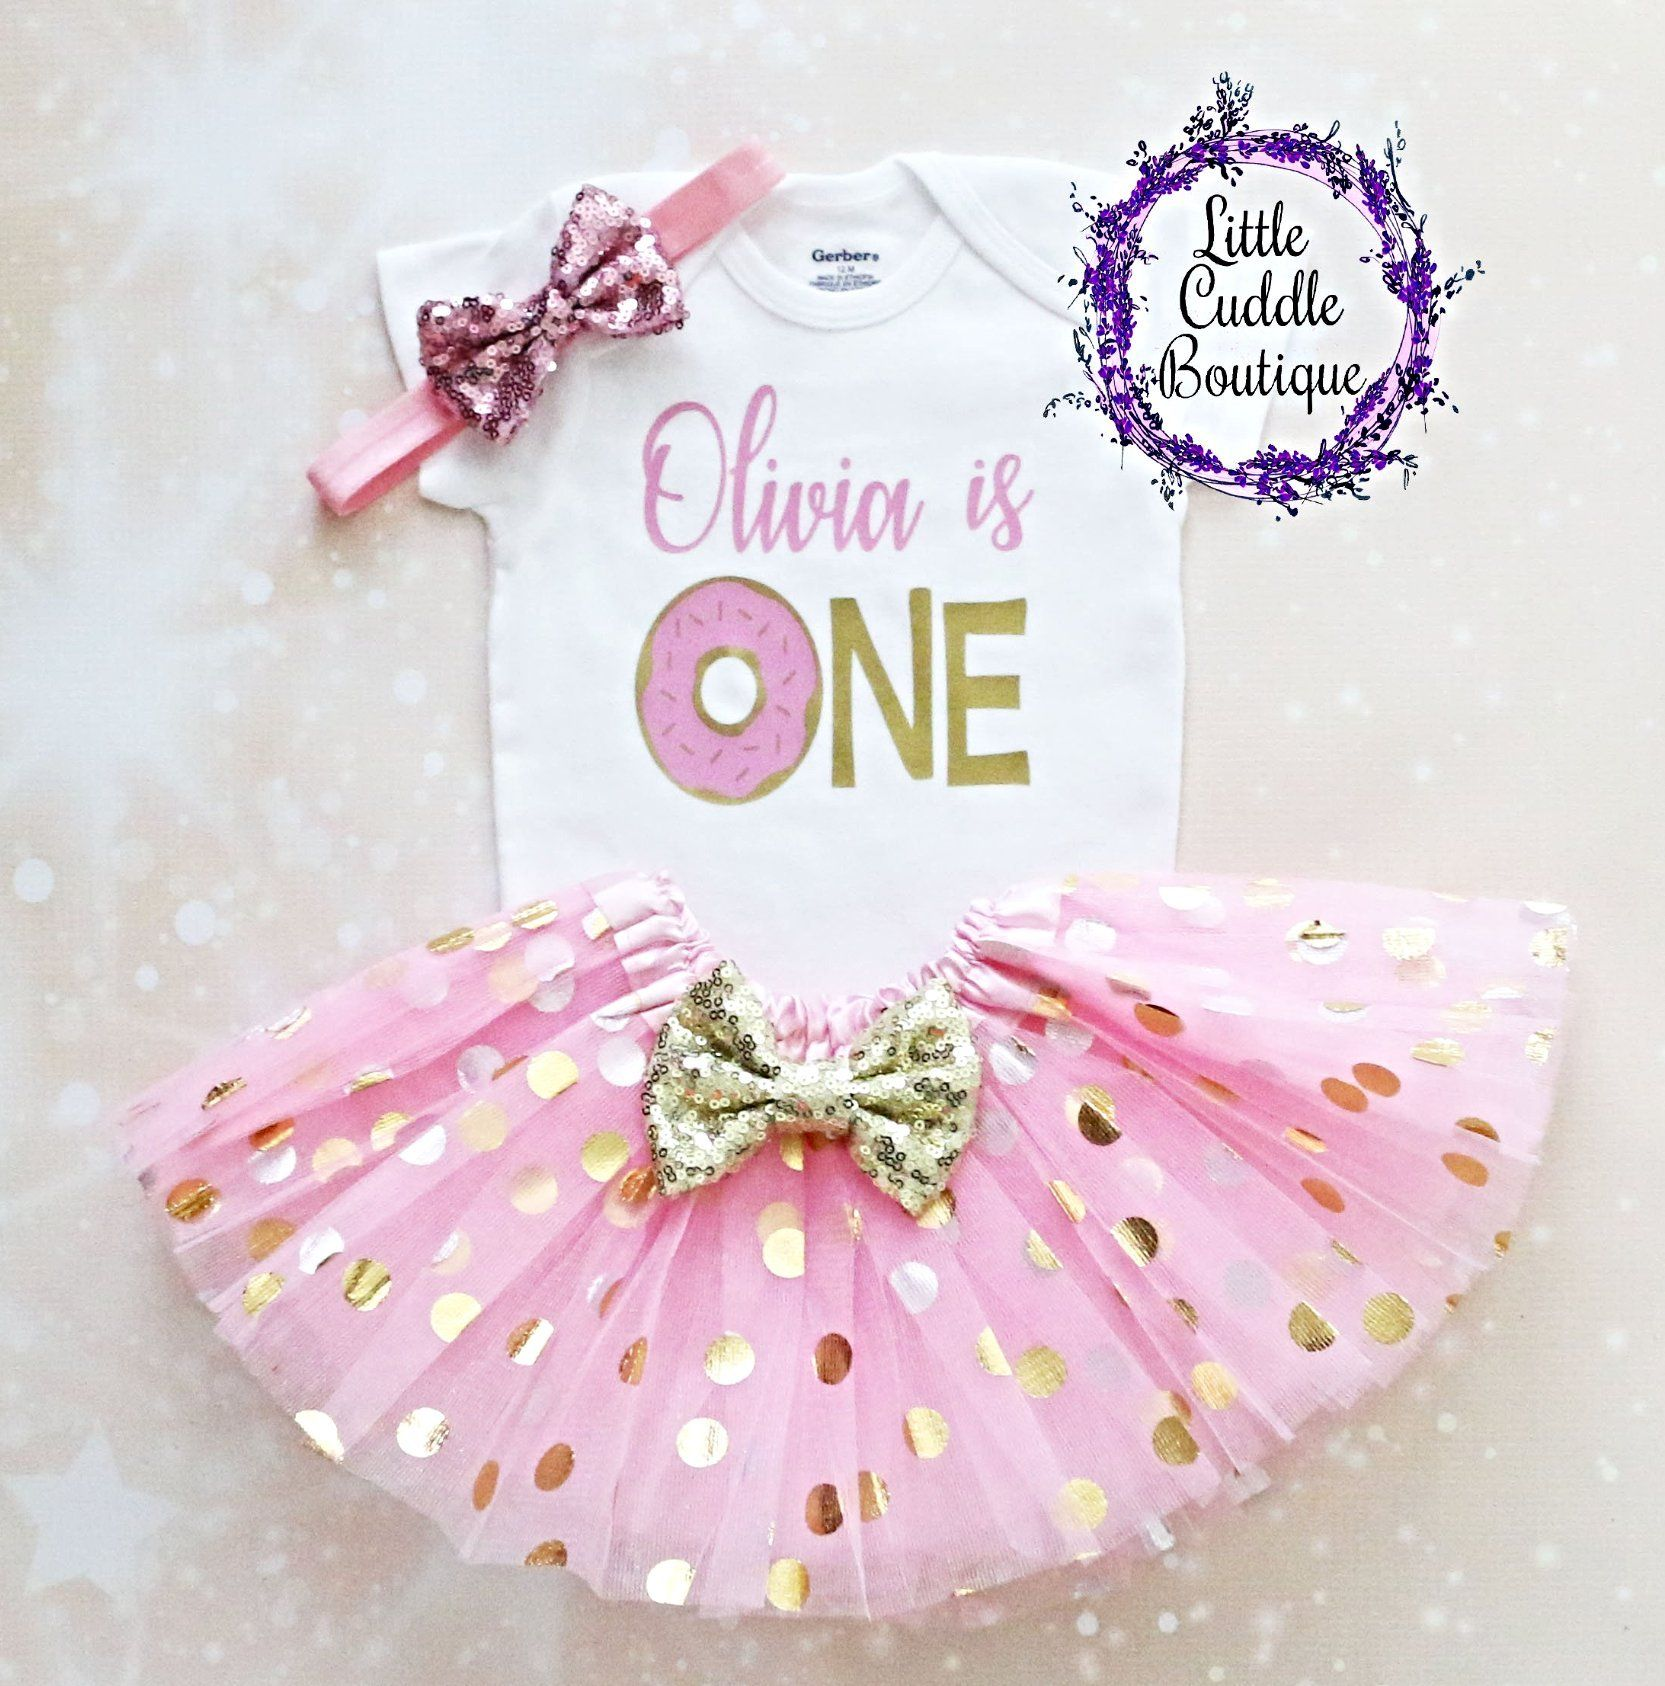 1439ab693 Personalized Donut First Birthday Tutu Outfit, Donut birthday party ideas,  Donut birthday theme, Doughnut, Donut onesie, First birthday donut ideas,  ...